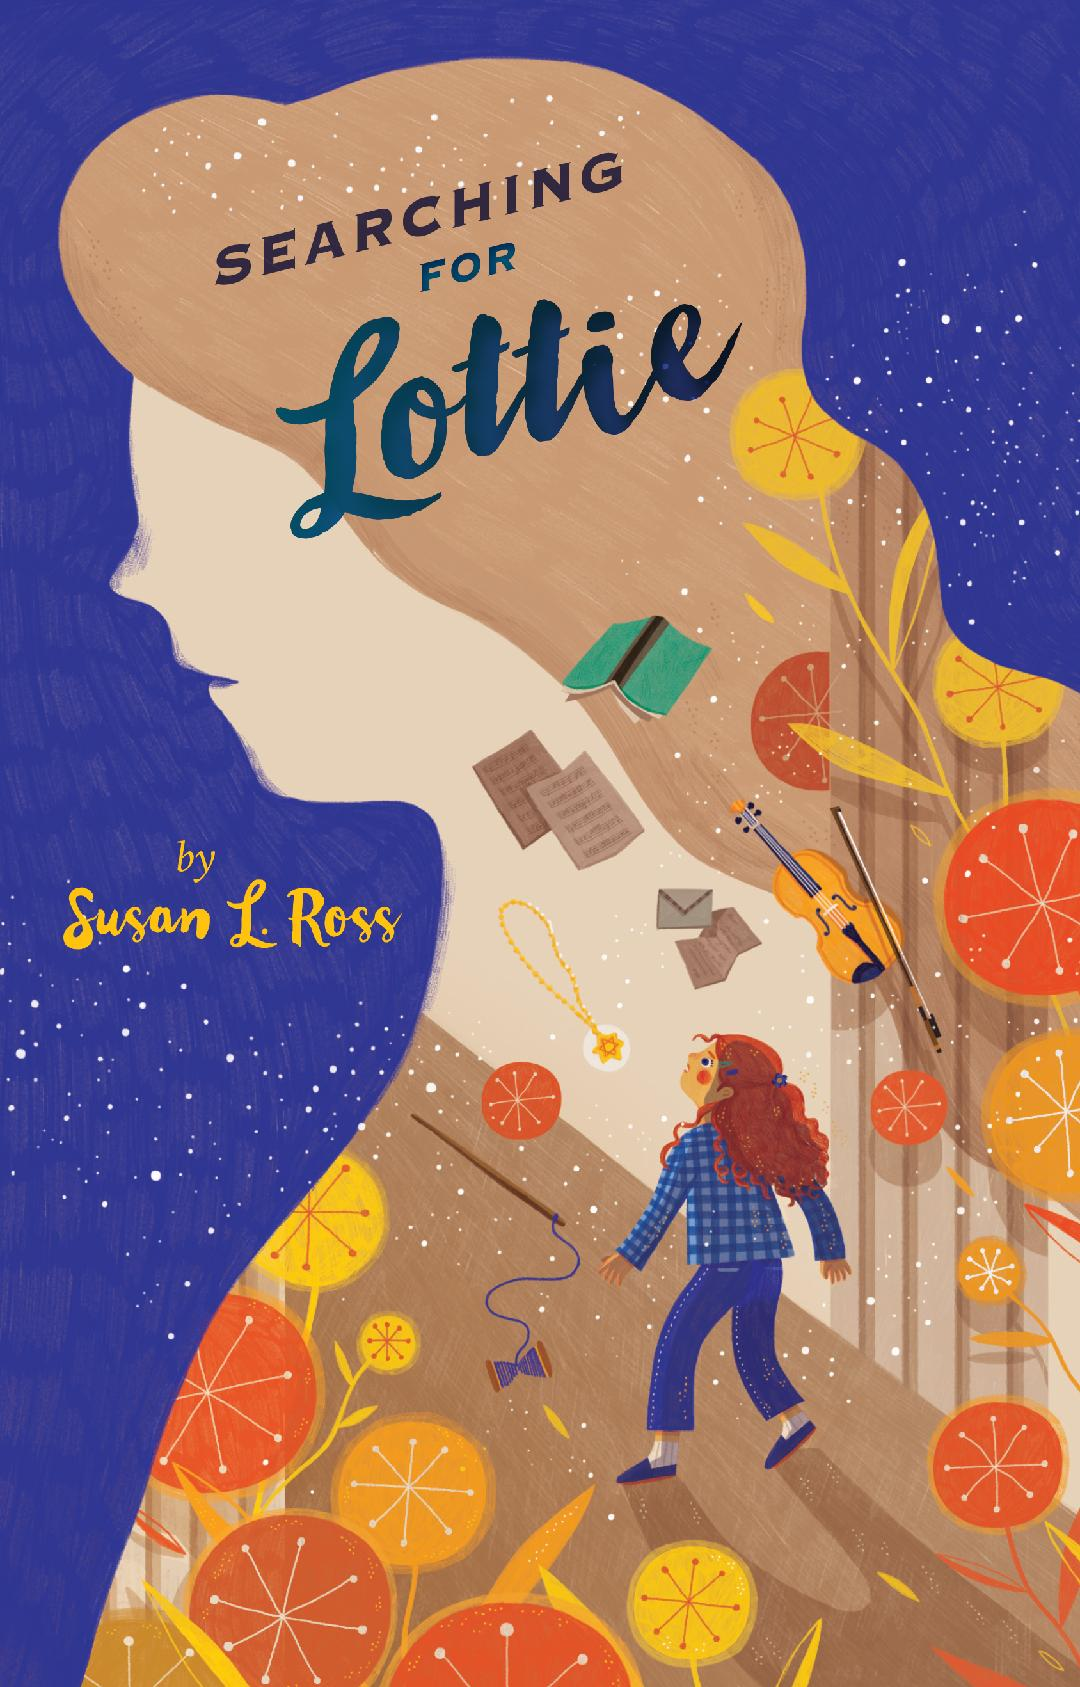 Author's Notebook   Searching for Lottie by Susan L  Ross